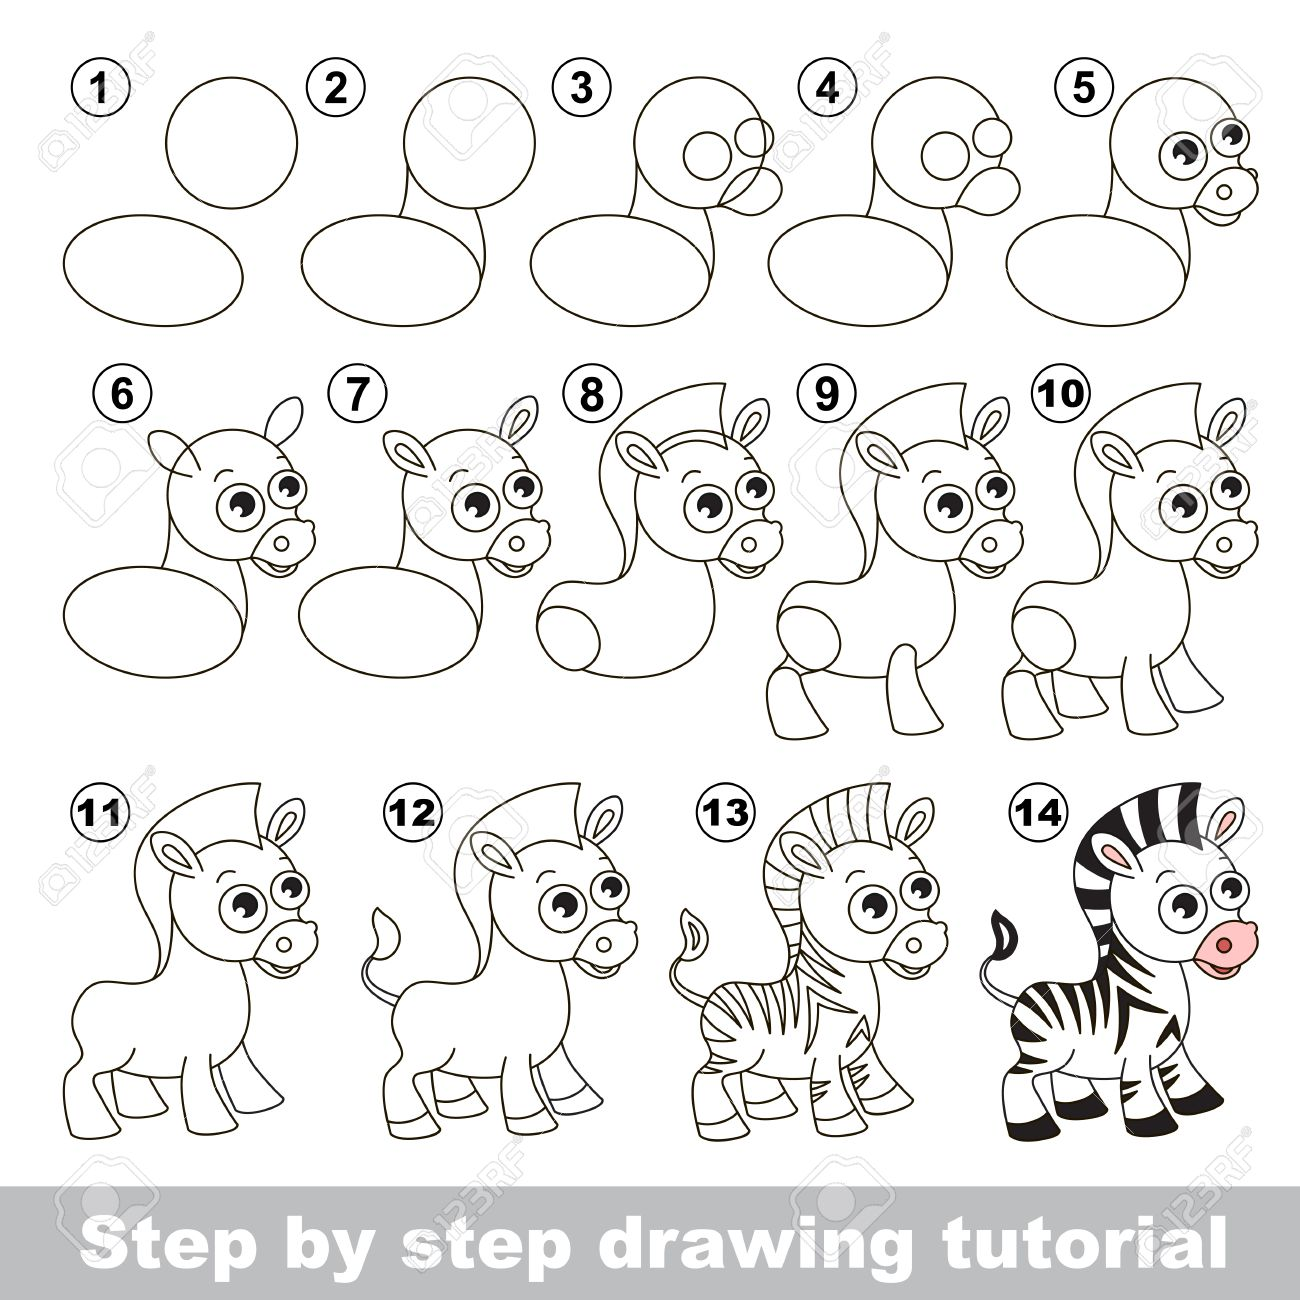 1300x1300 Drawing Tutorial For Children. How To Draw The Cute Zebra Royalty